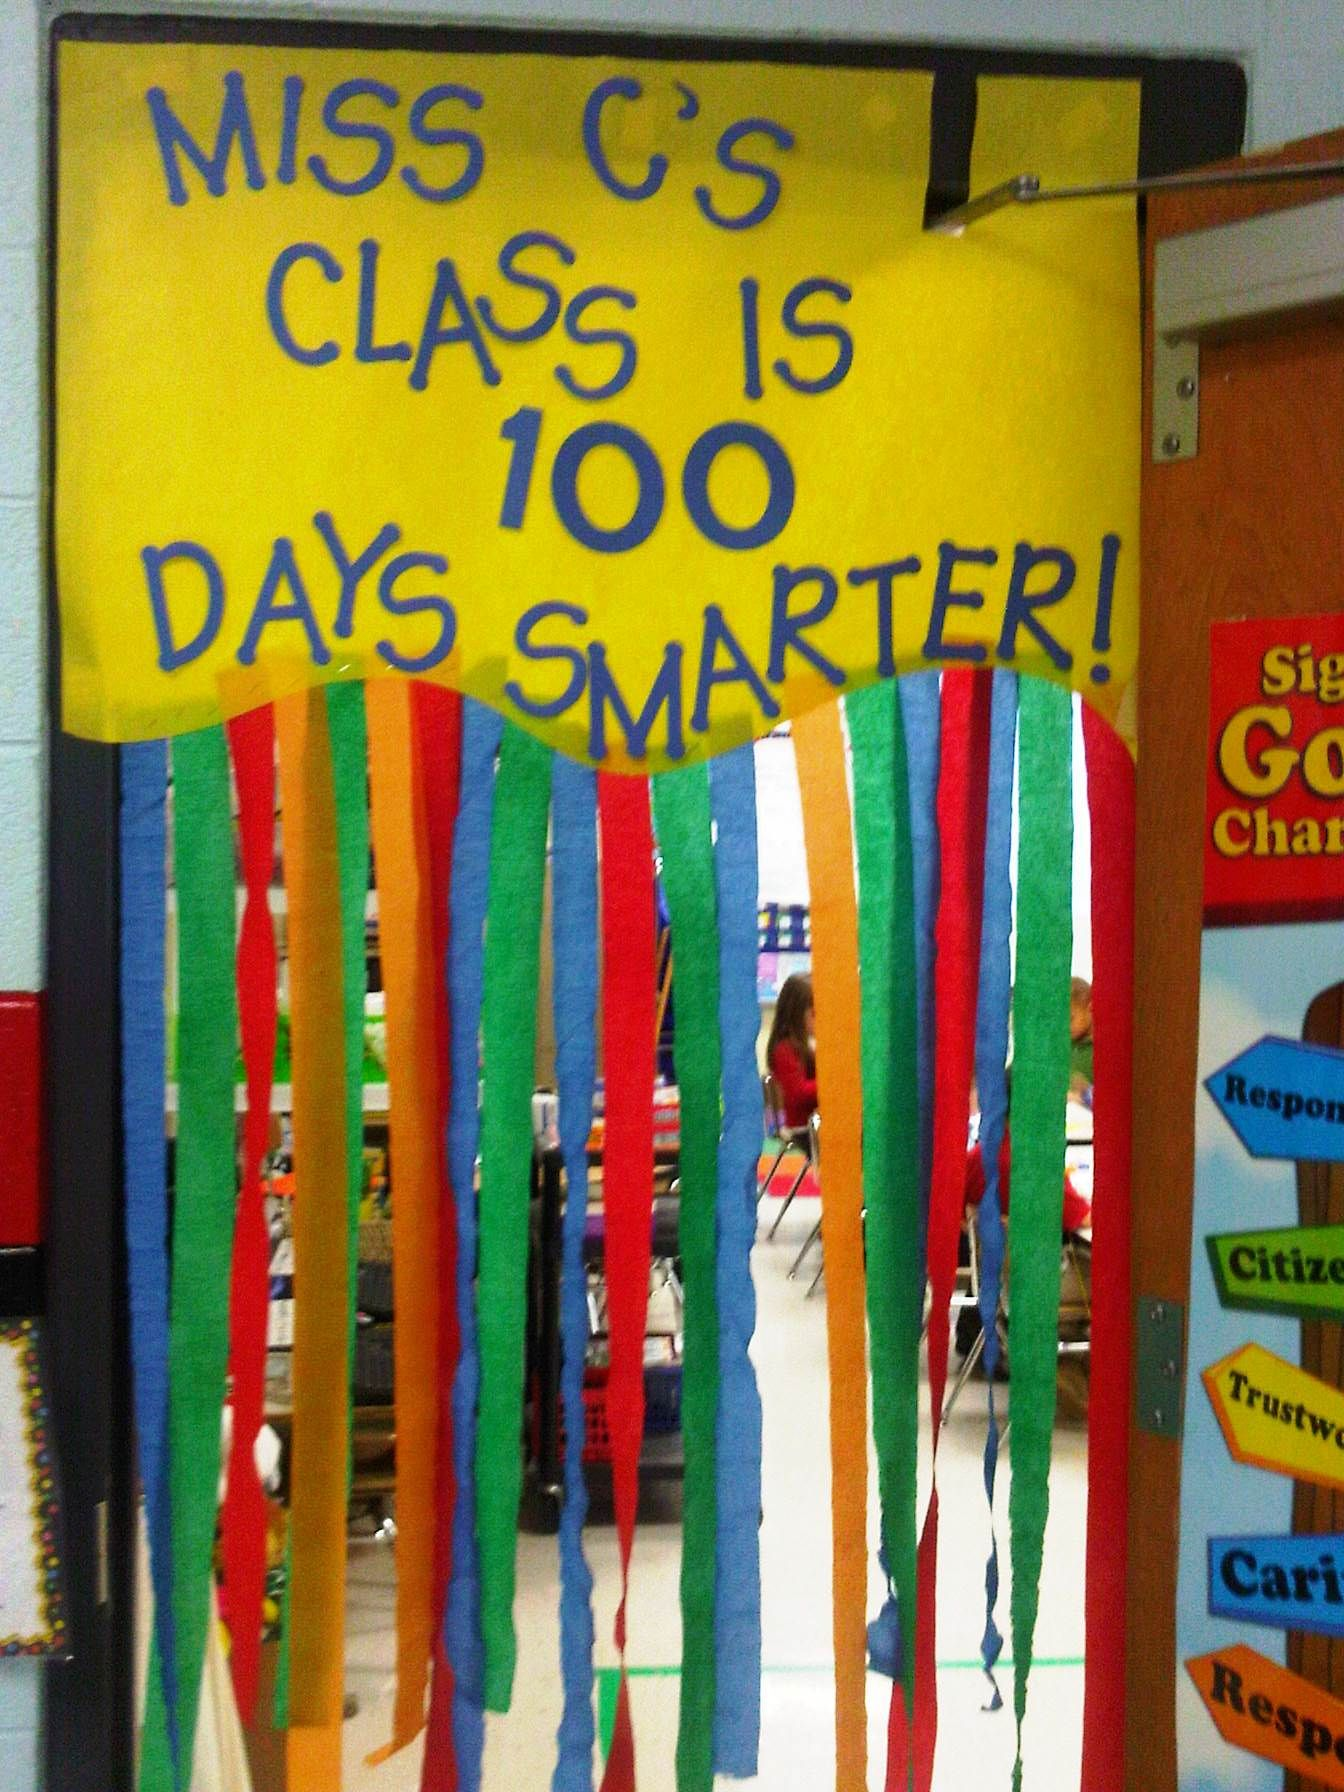 My door decoration for the 100th day of school! & My door decoration for the 100th day of school! | School ...